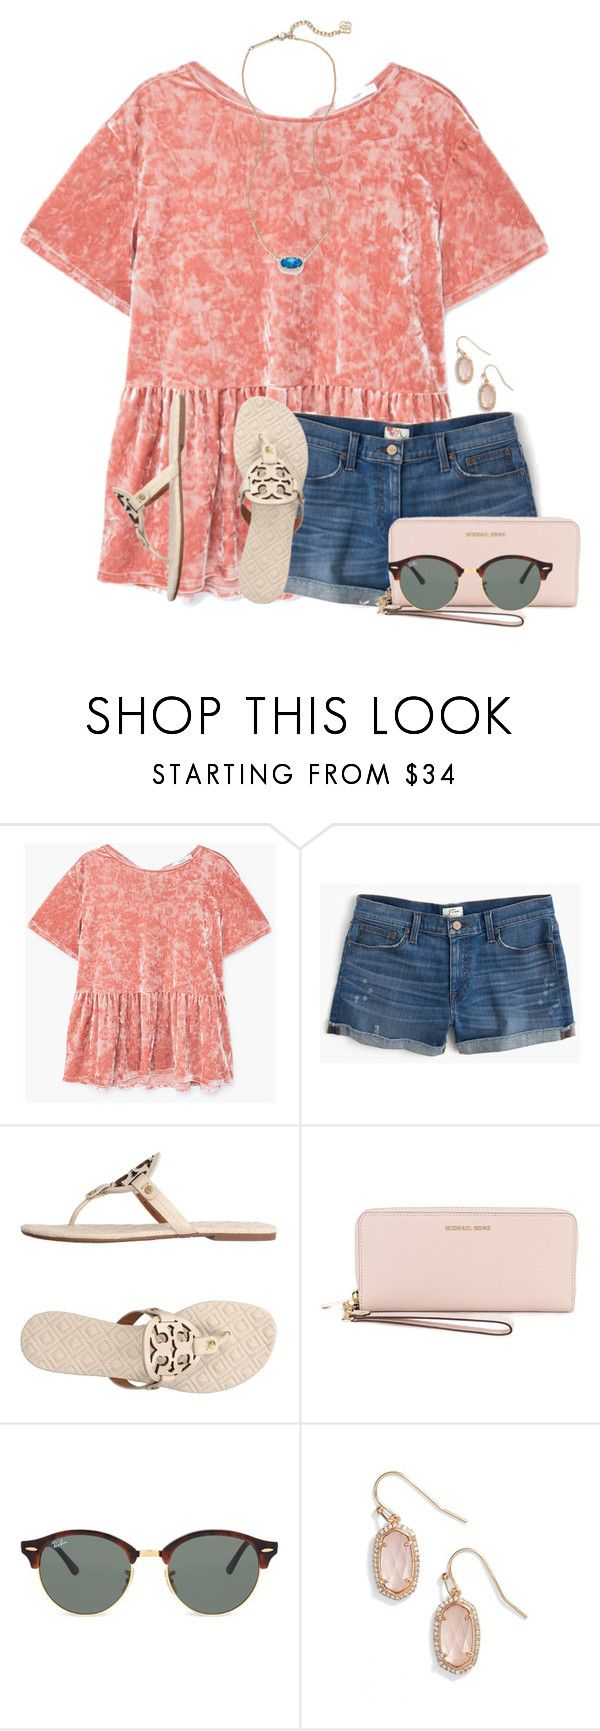 """""""QOTD: Whats the latest you've ever slept?"""" by auburnlady ❤ liked on Polyvore featuring MANGO, J.Crew, Tory Burch, MICHAEL Michael Kors, Ray-Ban and Kendra Scott"""